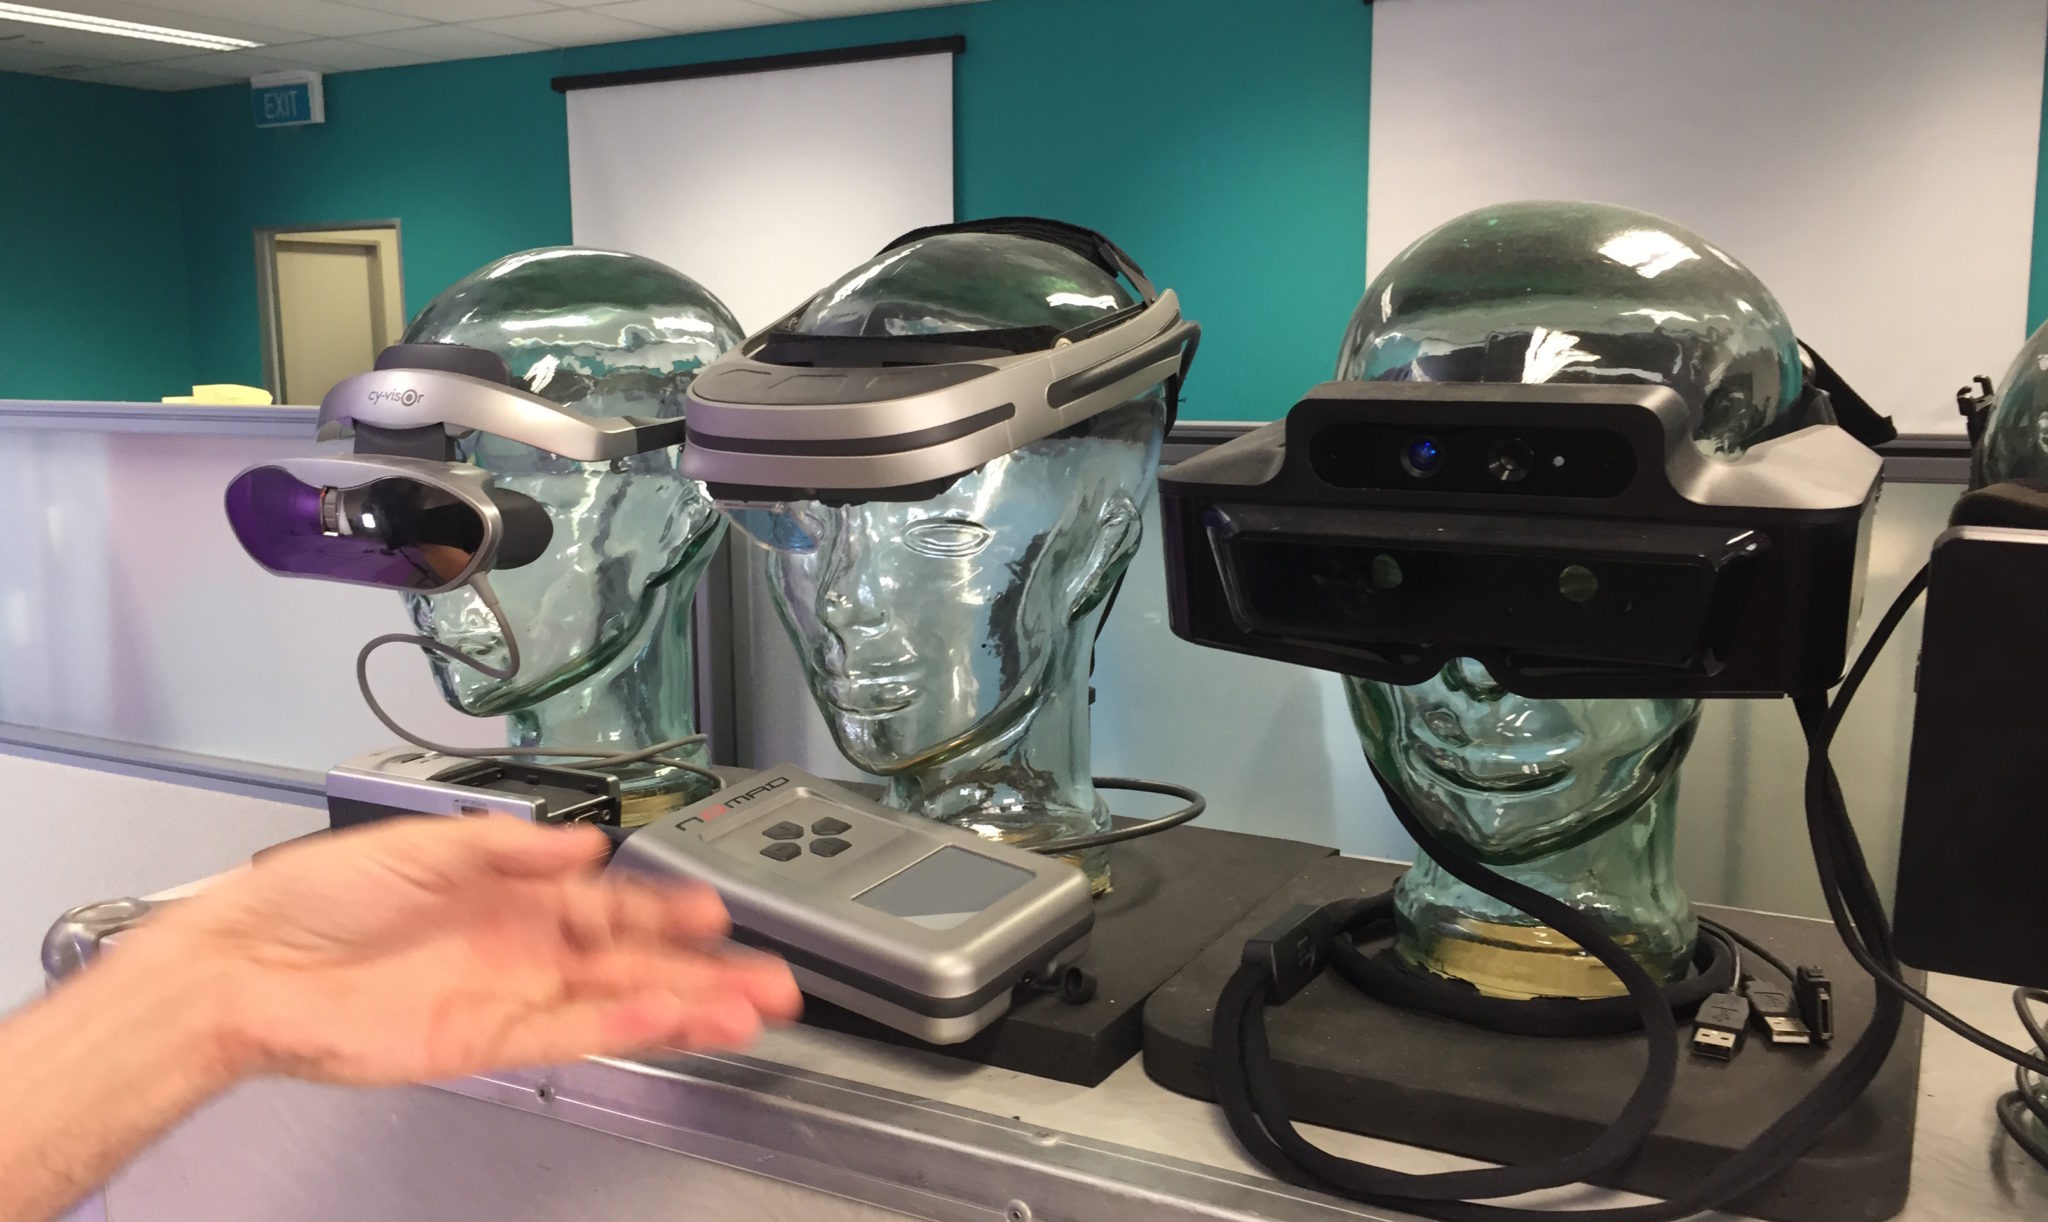 Several virtual reality headsets from the 1990s